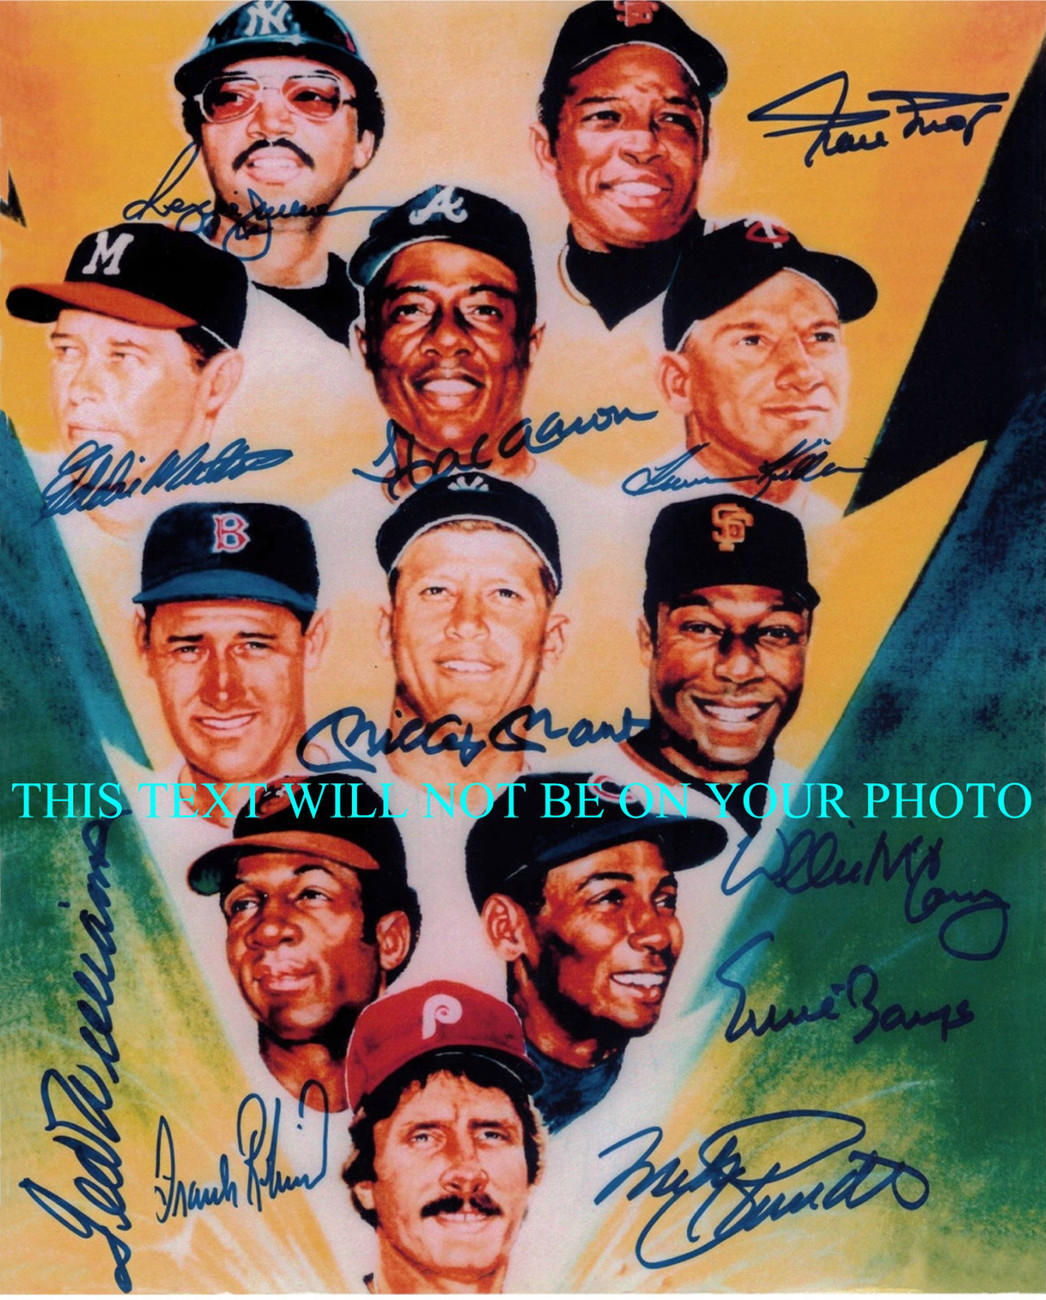 Primary image for BASEBALL LEGENDS 500 + HOME RUNS TED WILLIAMS HANK AARON + SIGNED 8x10 RP PHOTO